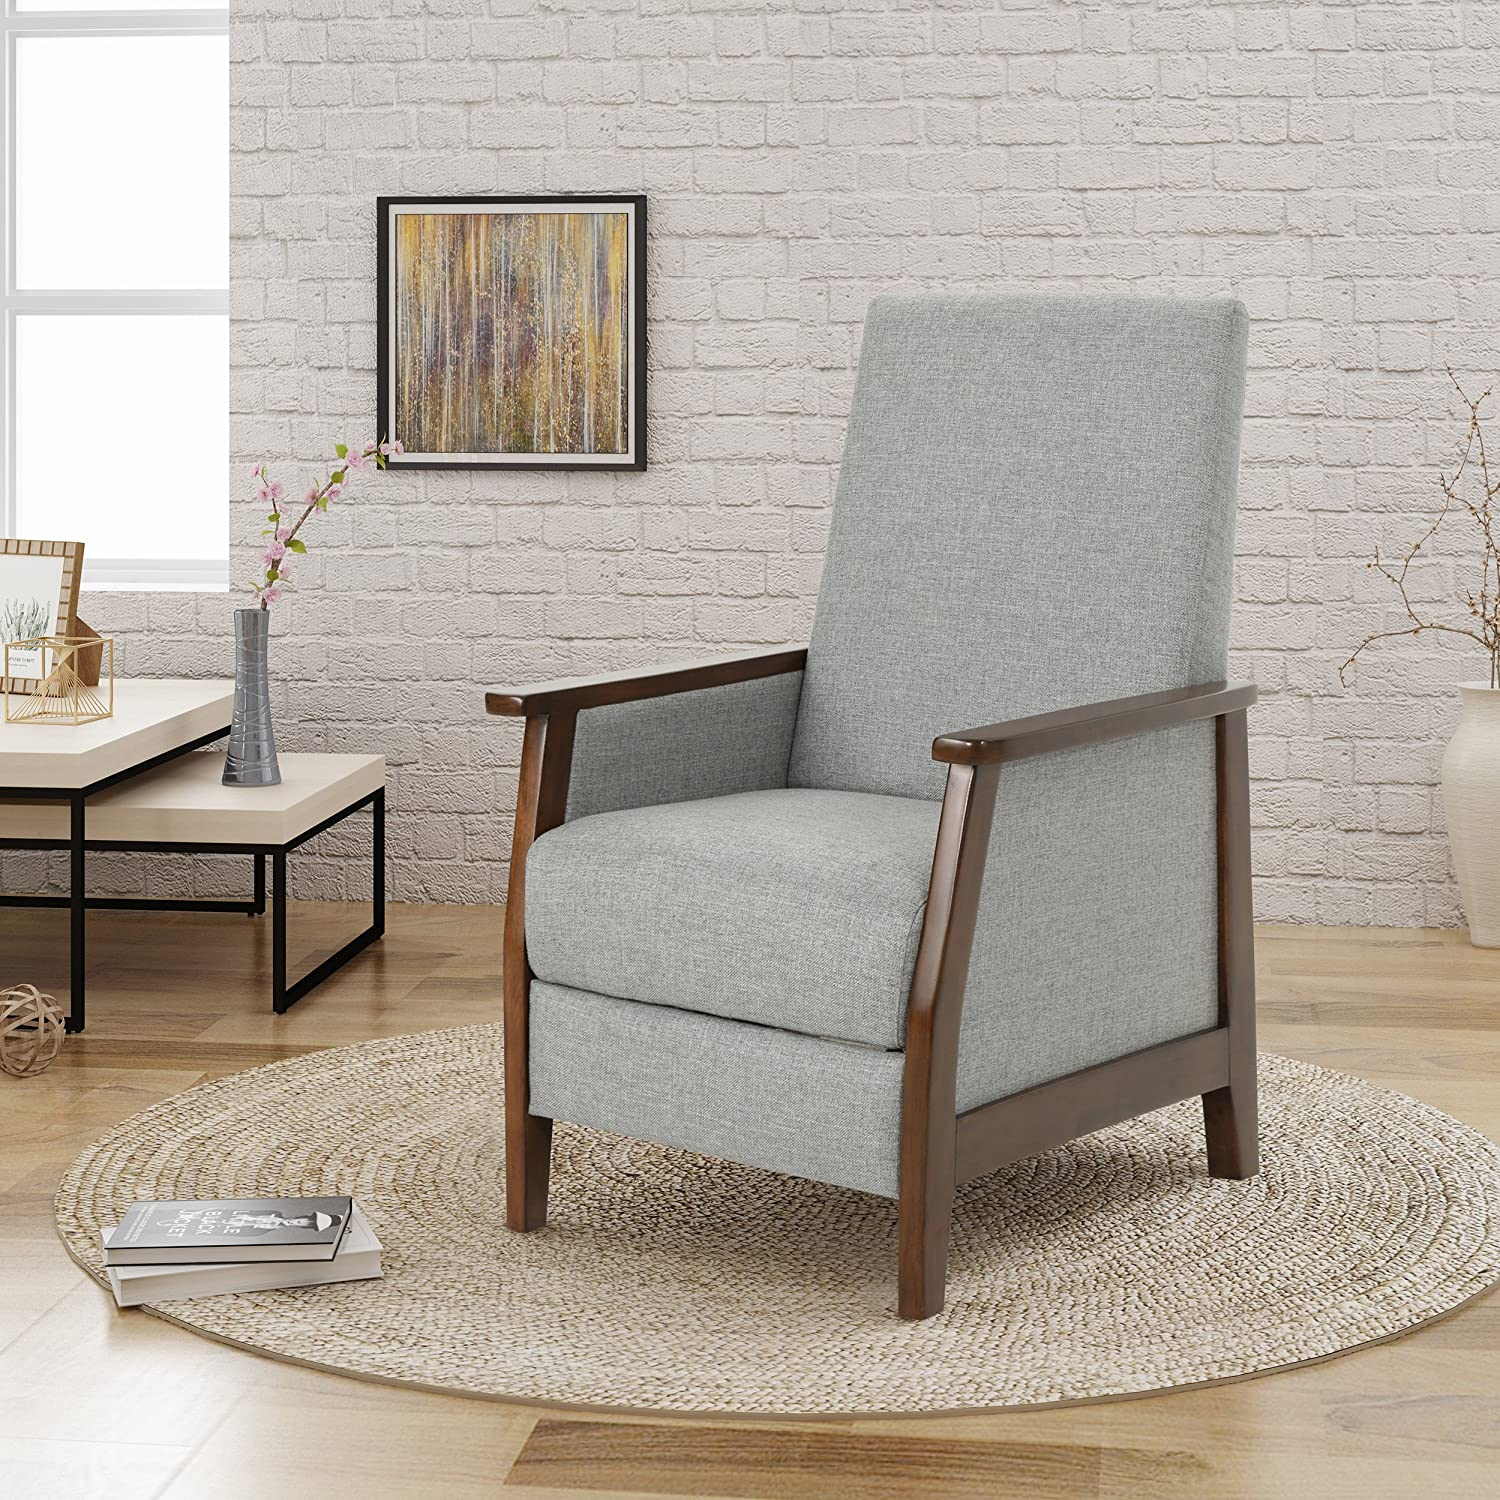 Christopher Knight Home Alex Push Back Recliner, Grey + Brown